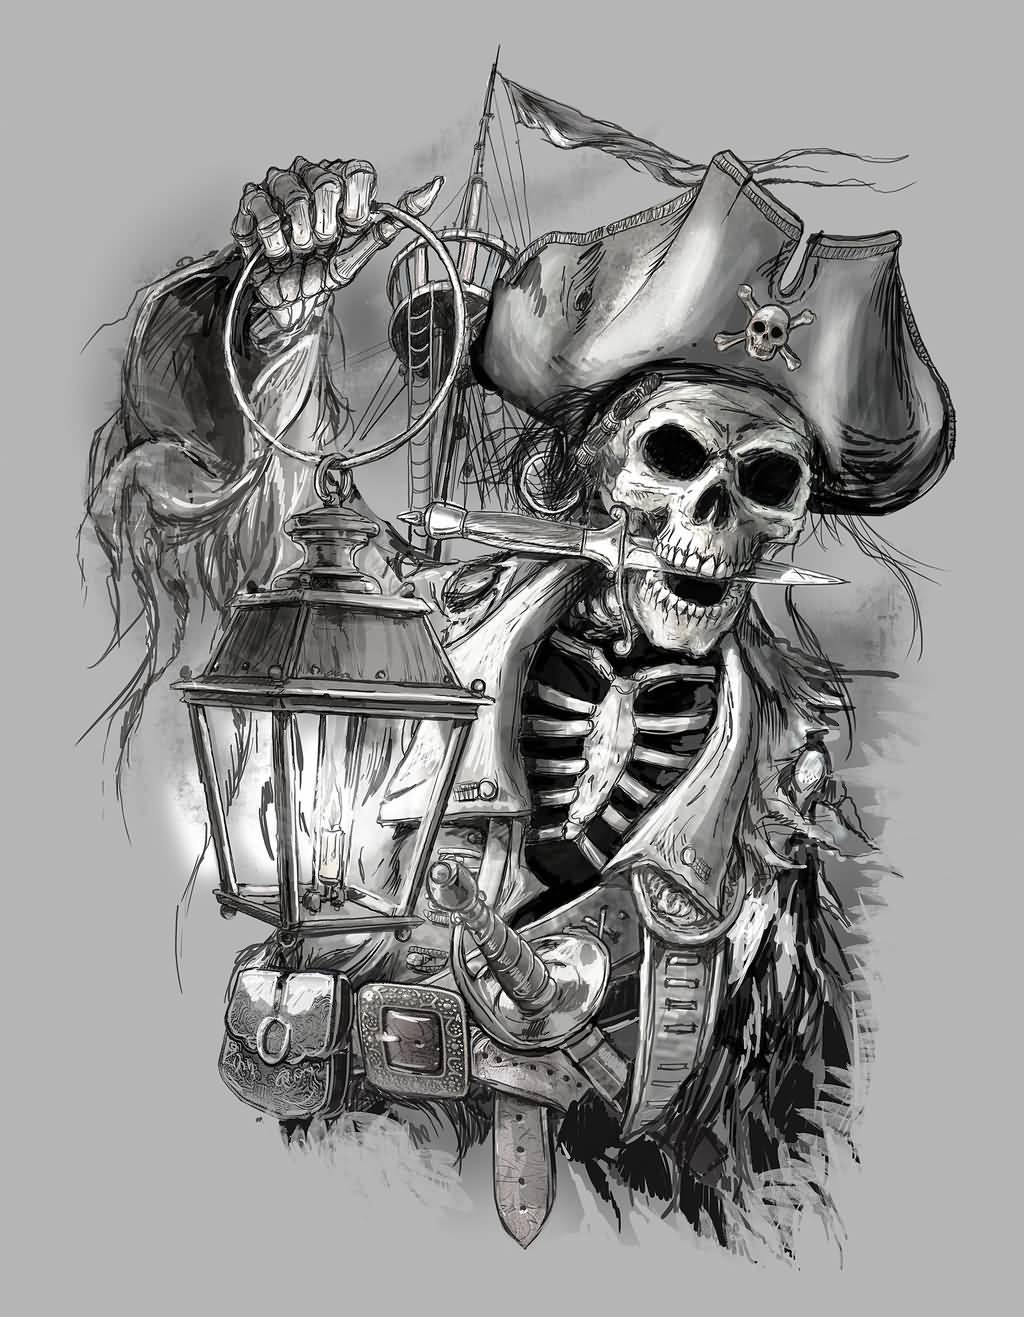 Grey Ink Candle Lamp In Pirate Skeleton Hand Tattoo Design By Obxrussell